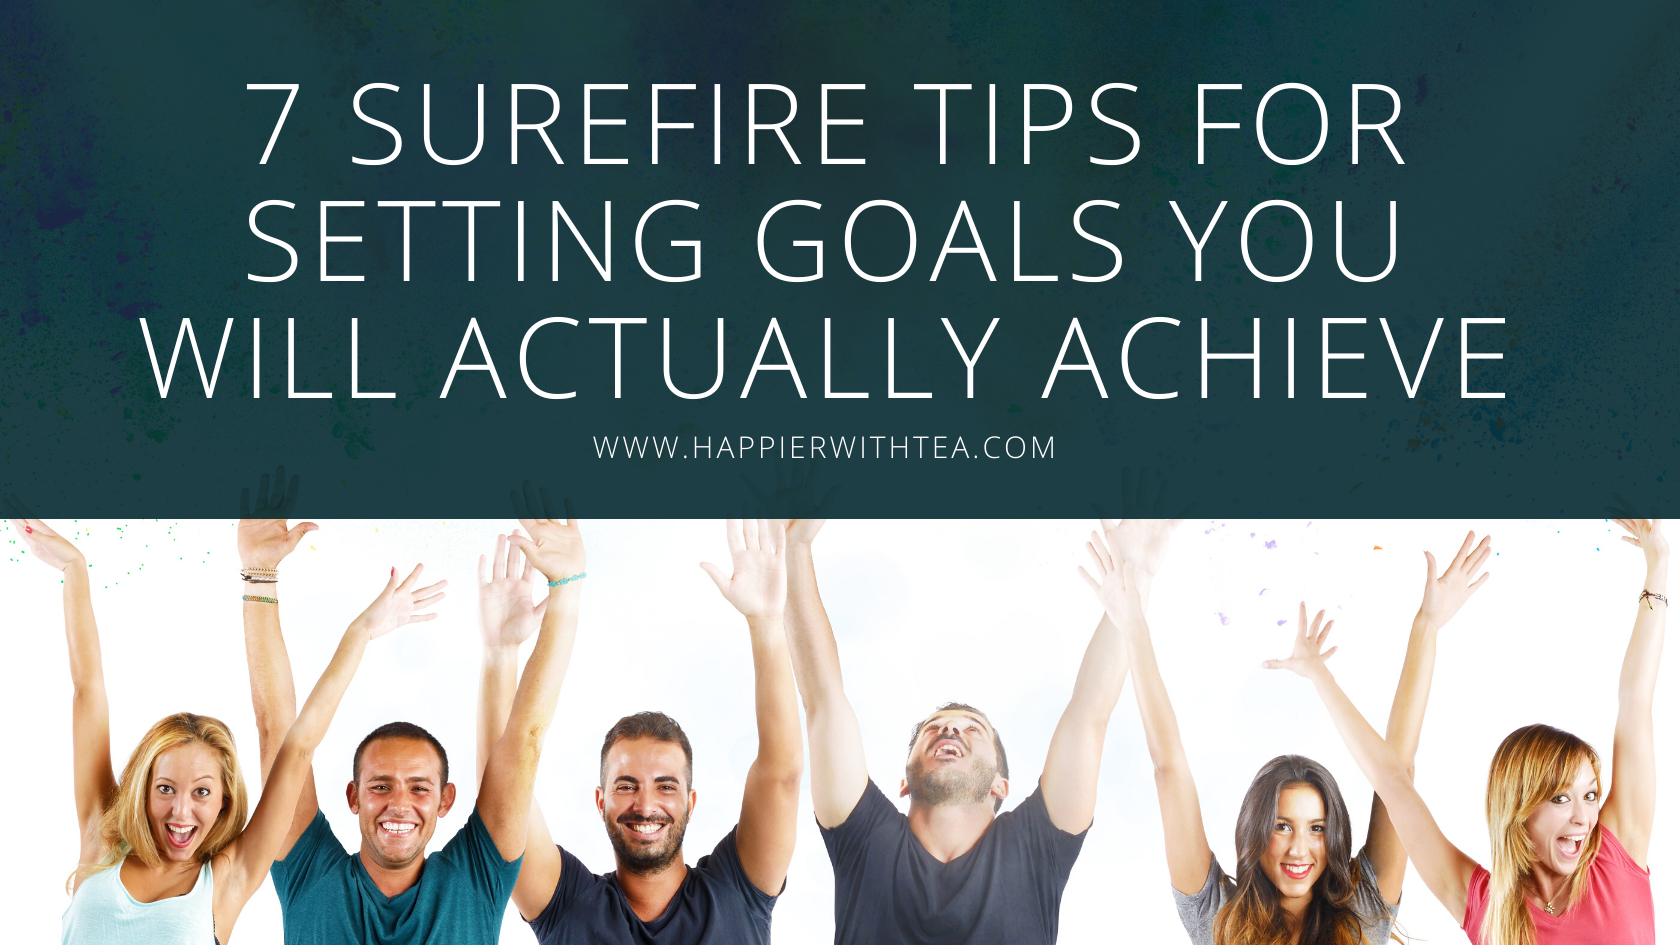 7 Surefire Tips for Setting Goals You Will Actually Achieve